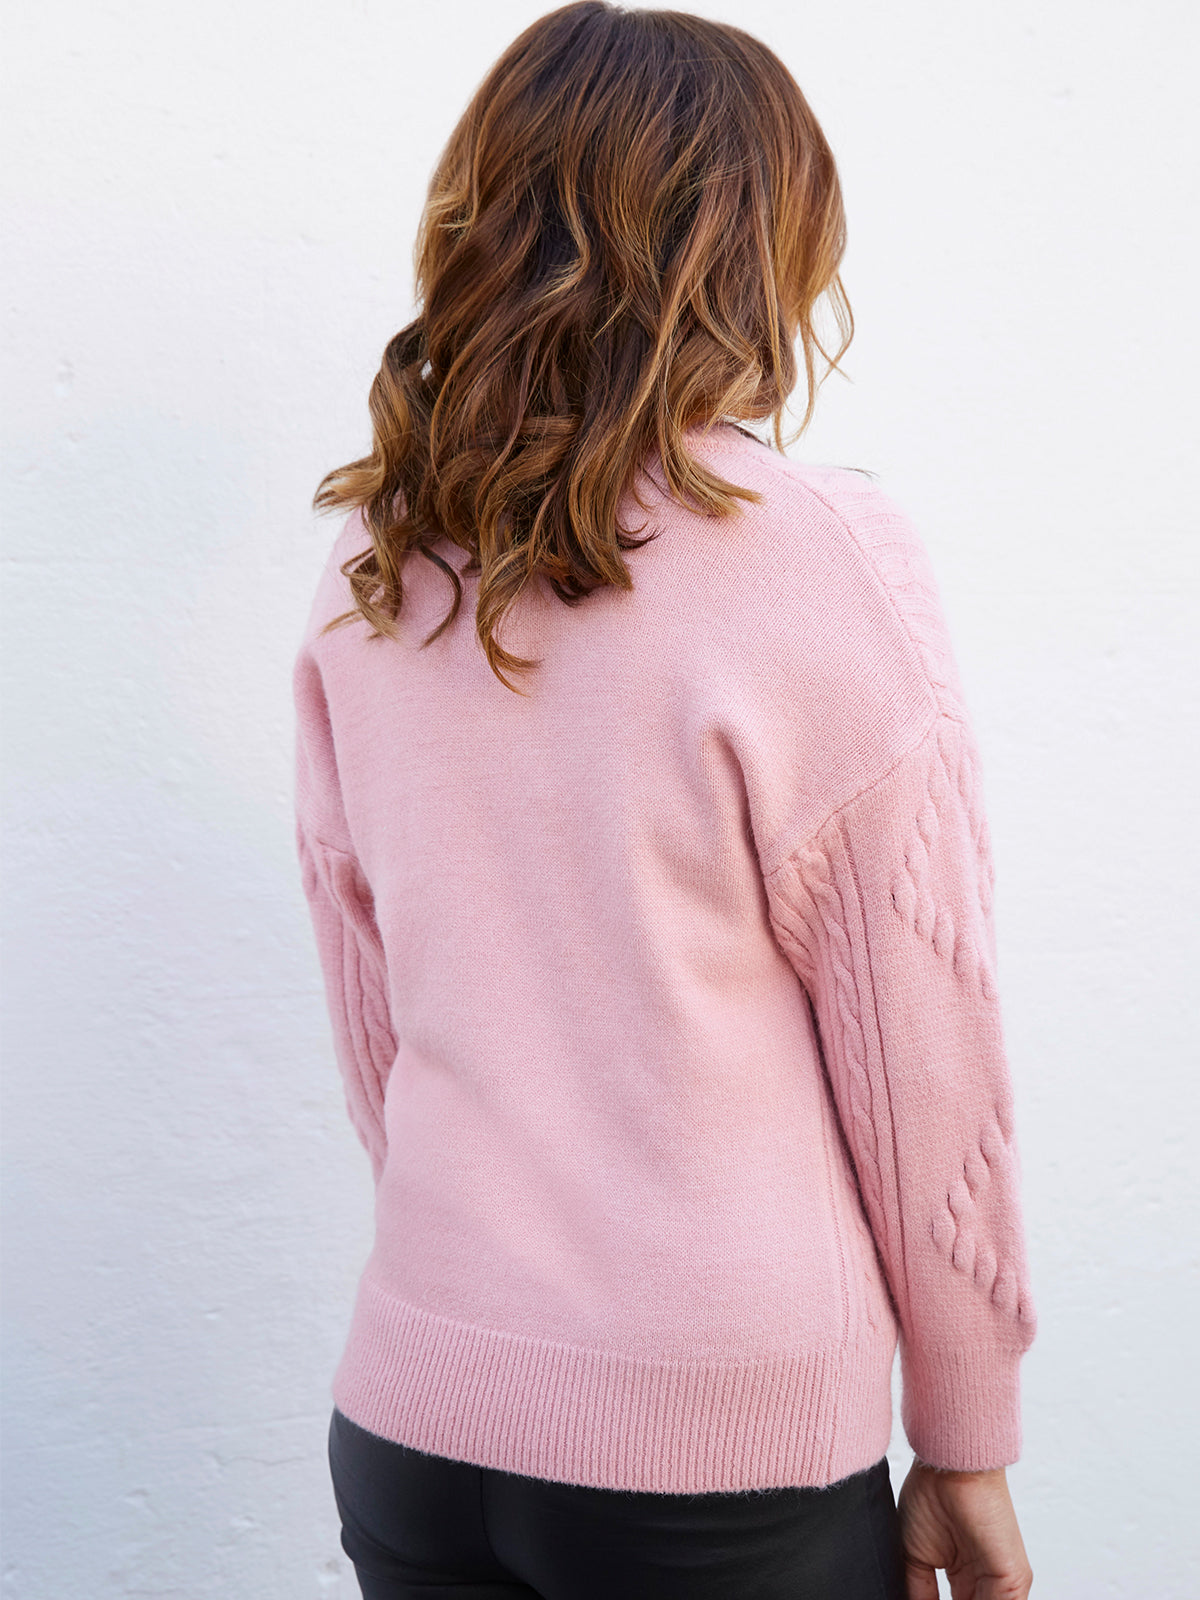 HEART & SOUL ROSE PINK KNIT